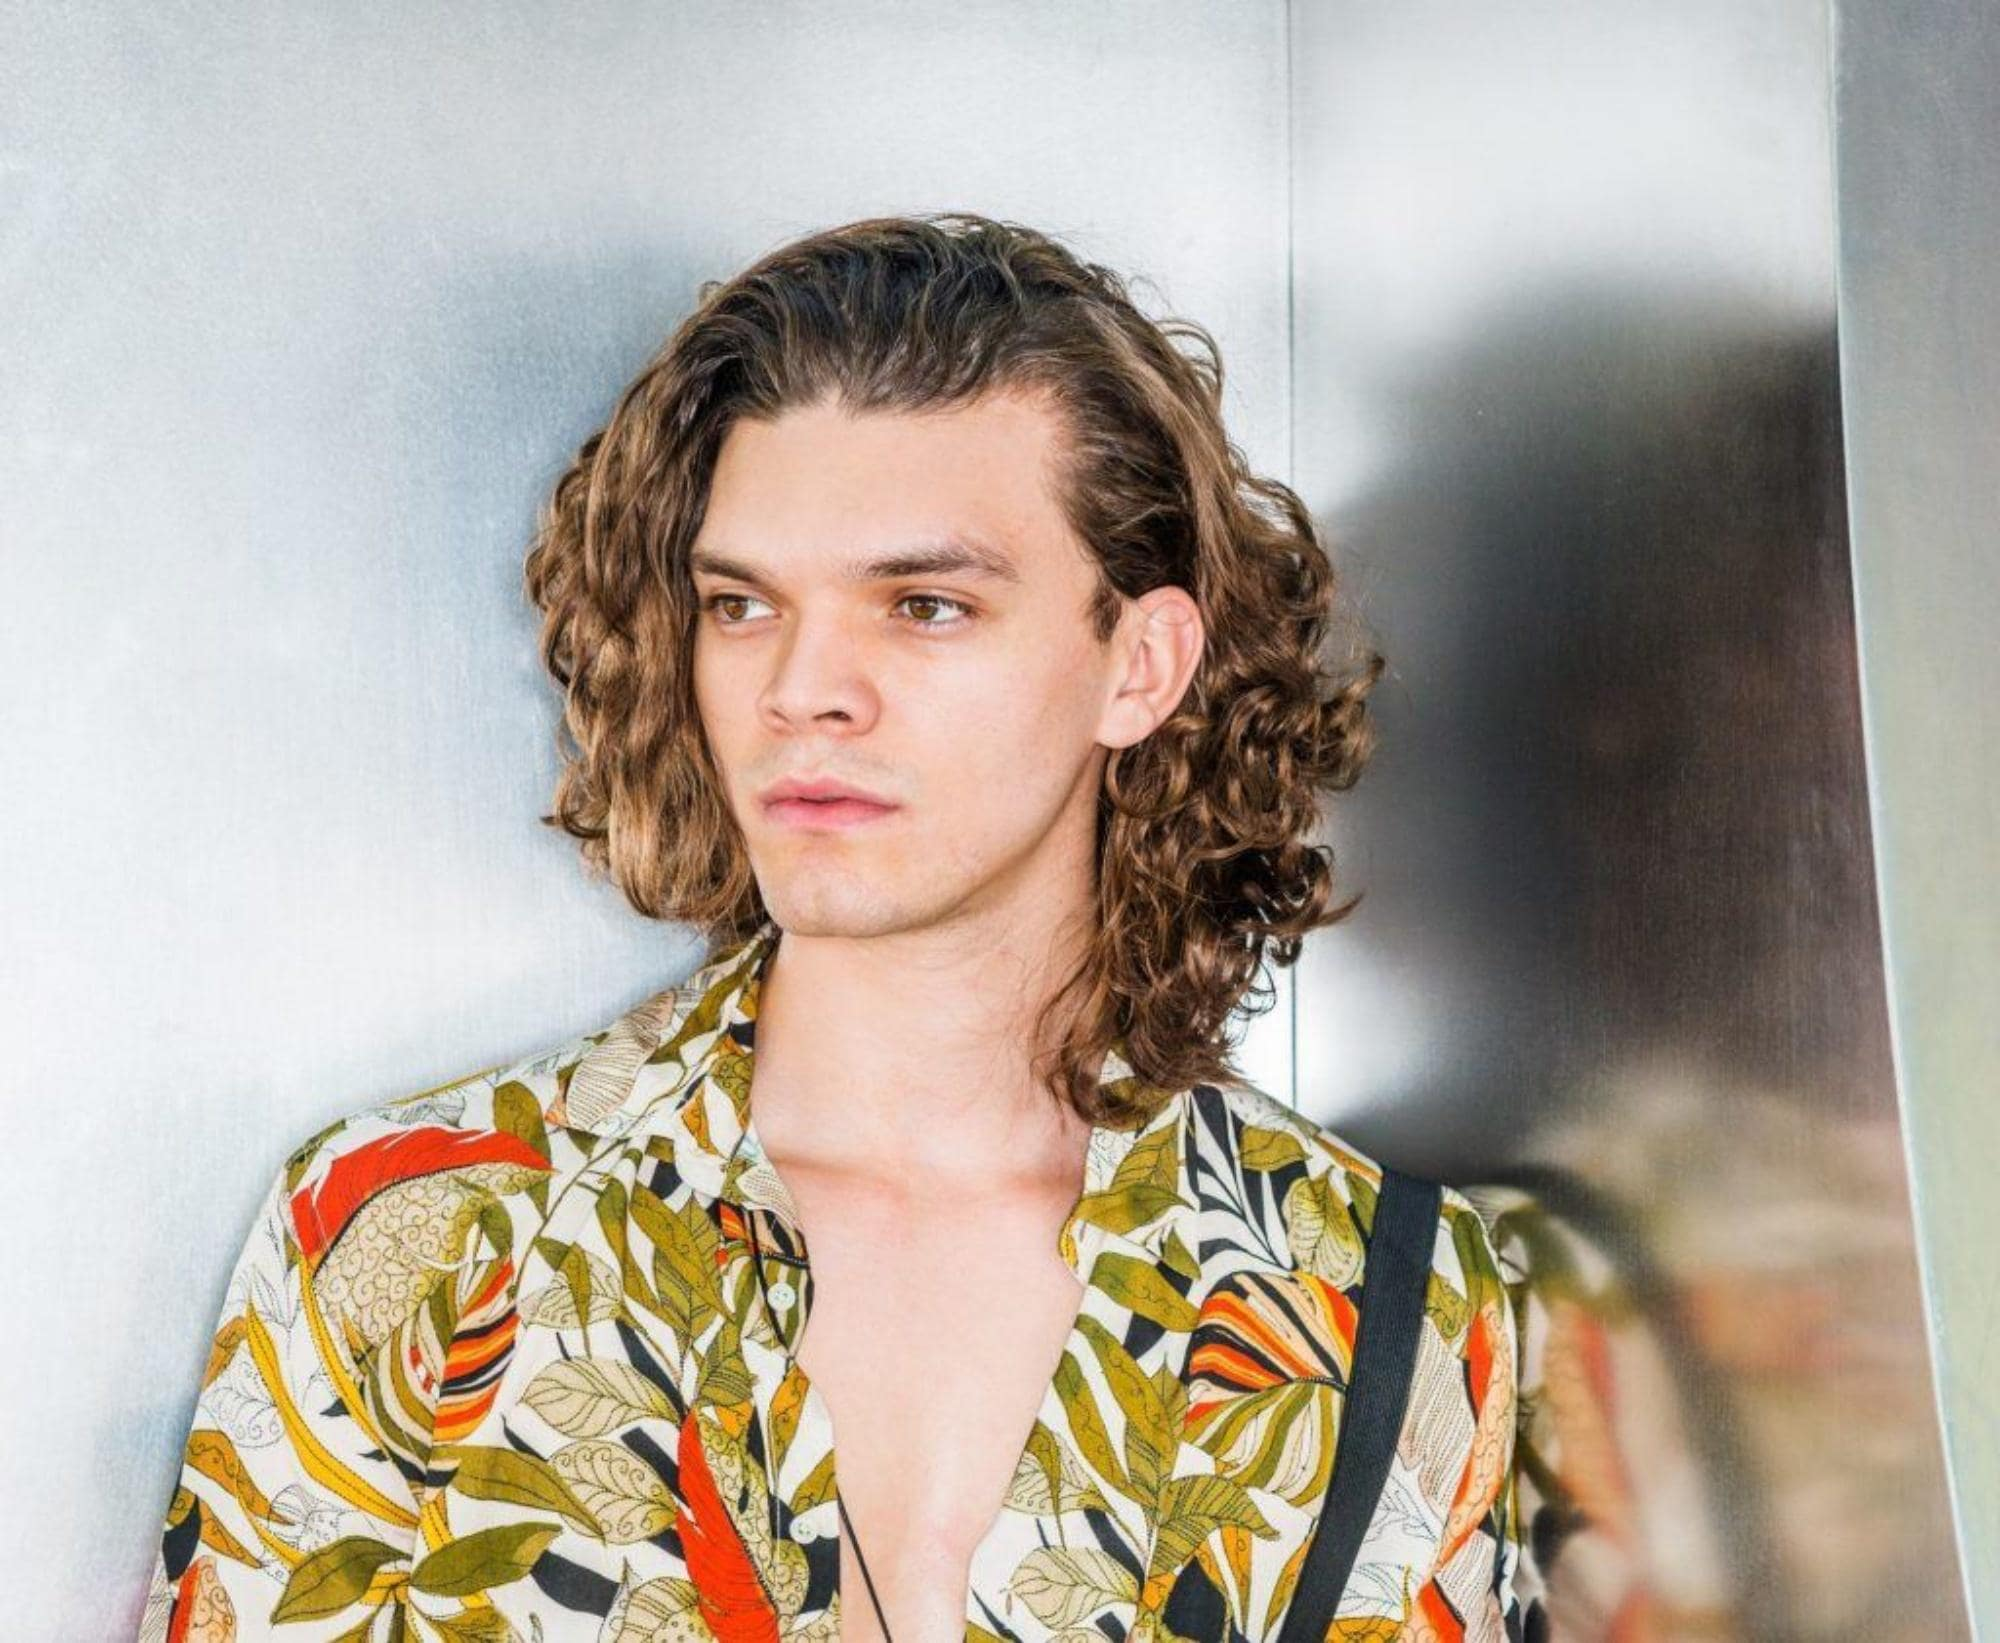 Man Perm 14 Best Perm Styles For Men In 2019